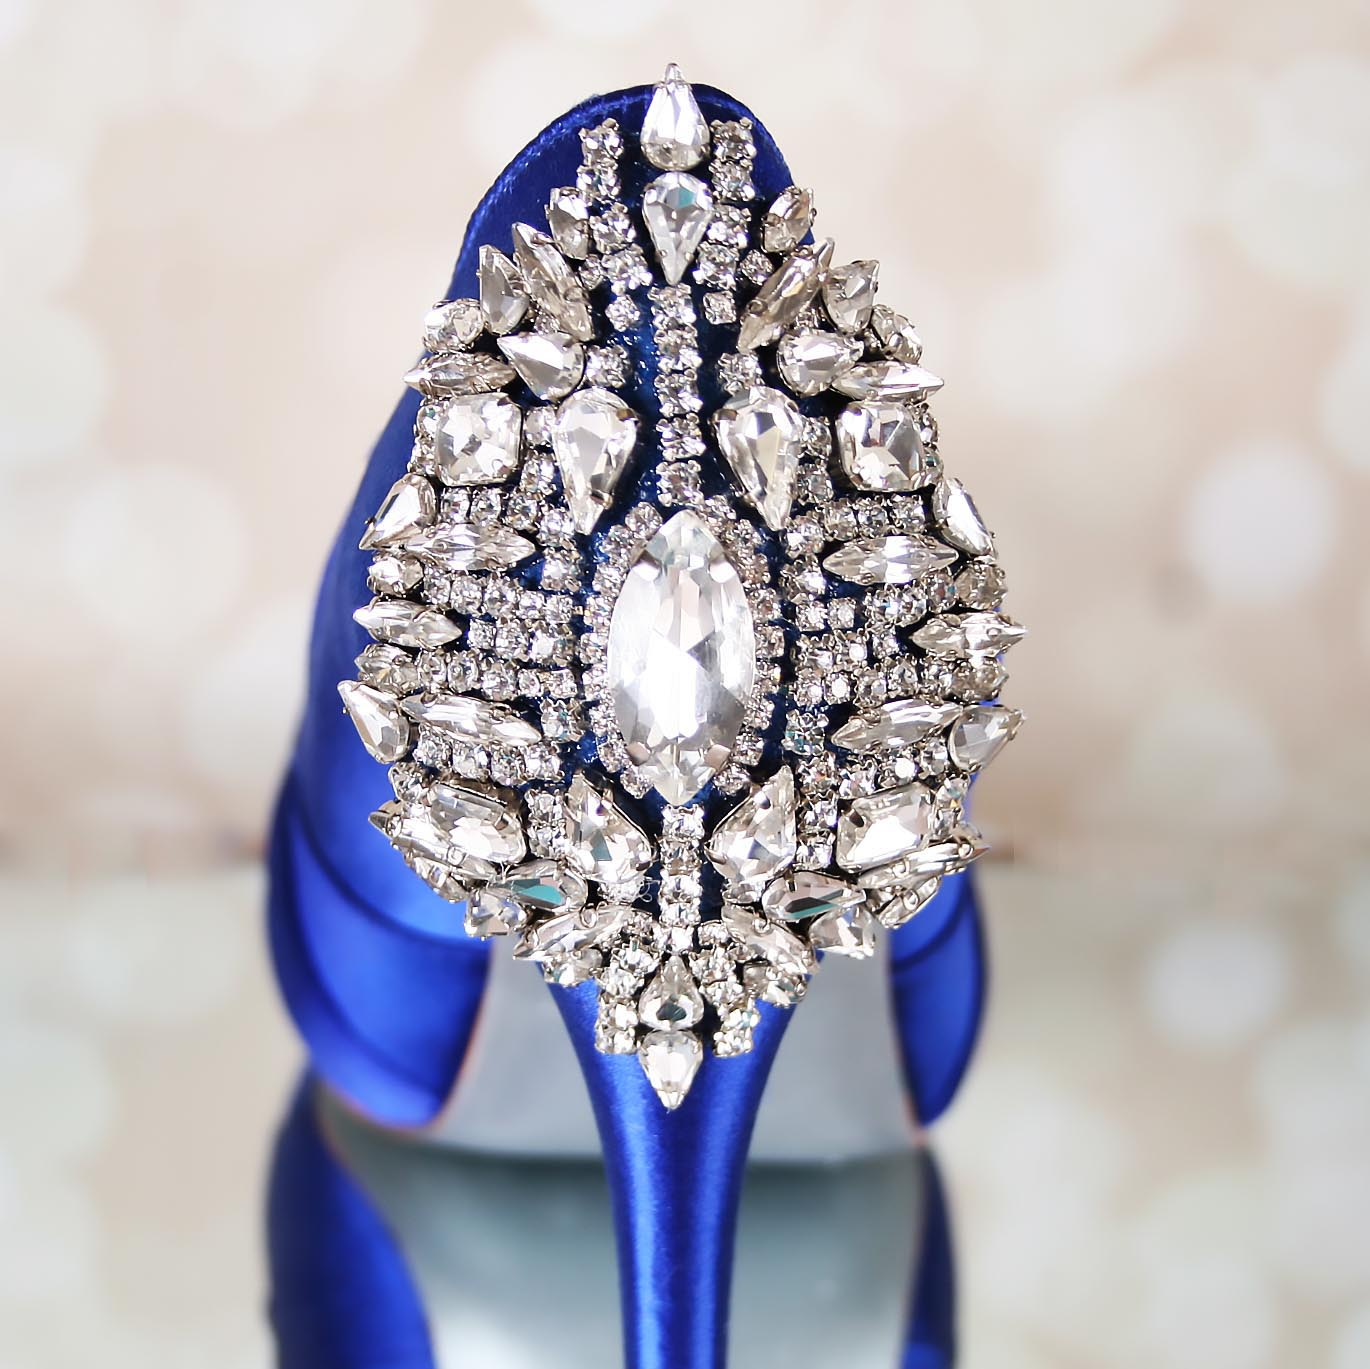 Royal Blue Open Toe Platform Wedding Shoes with Crystal Heel Something Blue Wedding Shoes by Ellie Wren